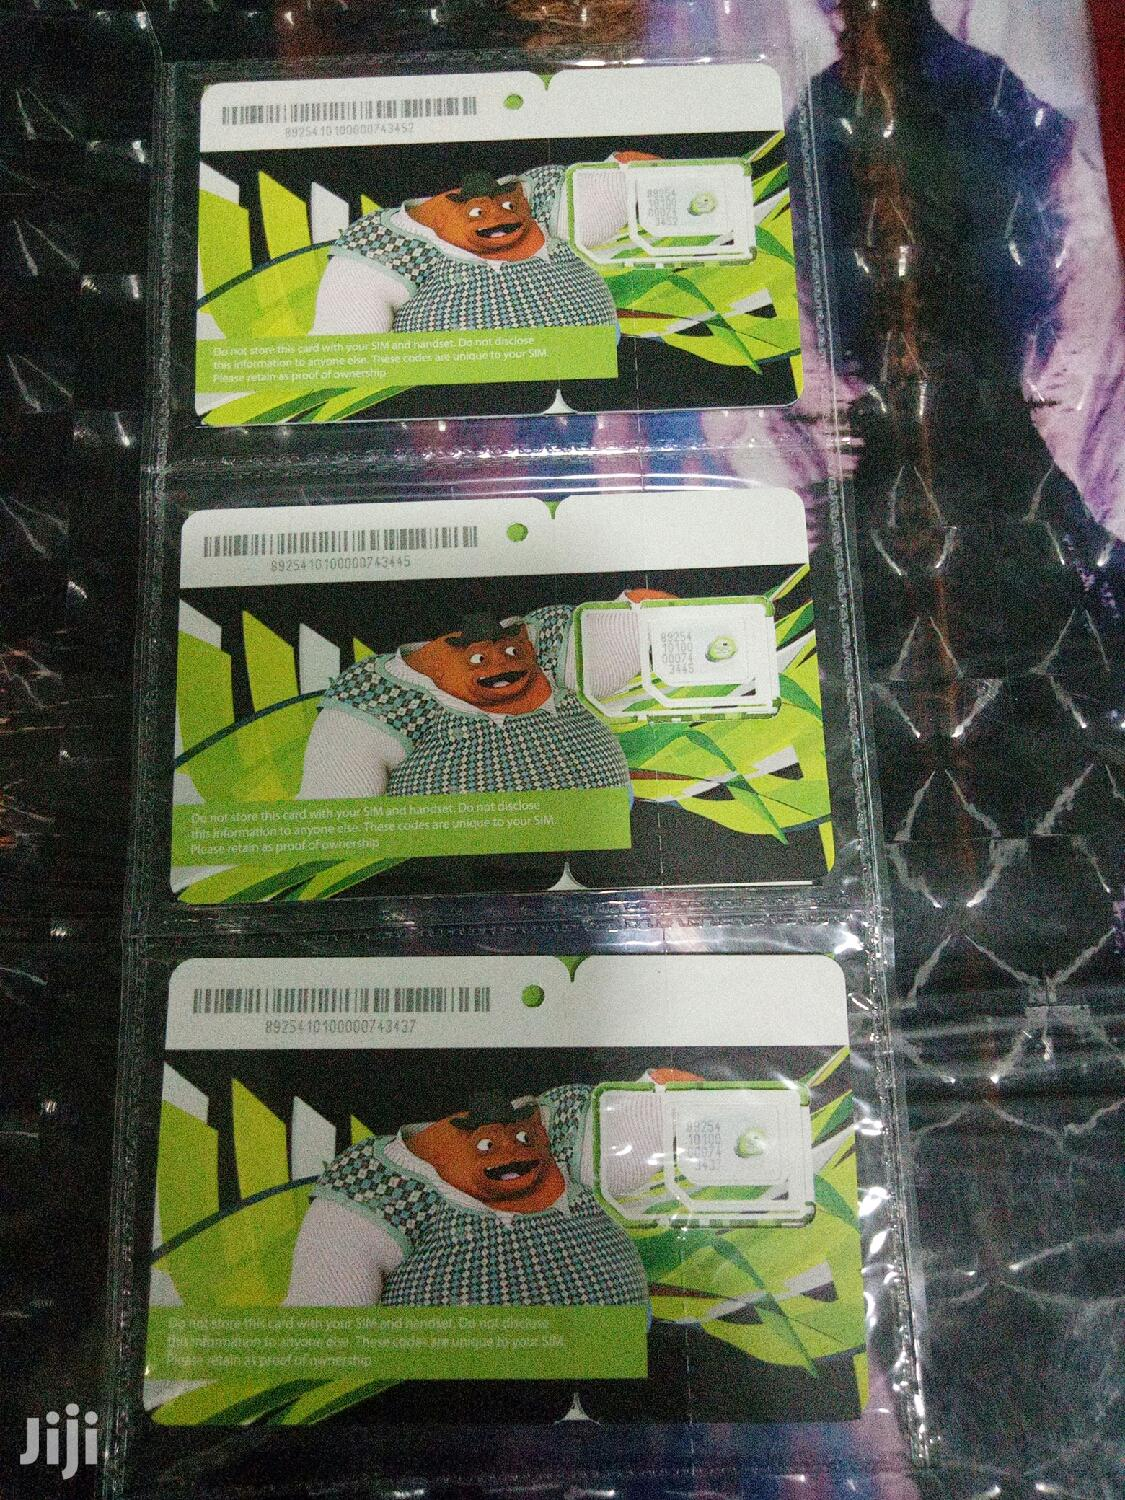 Faiba 4G Simcard | Accessories for Mobile Phones & Tablets for sale in Nairobi Central, Nairobi, Kenya